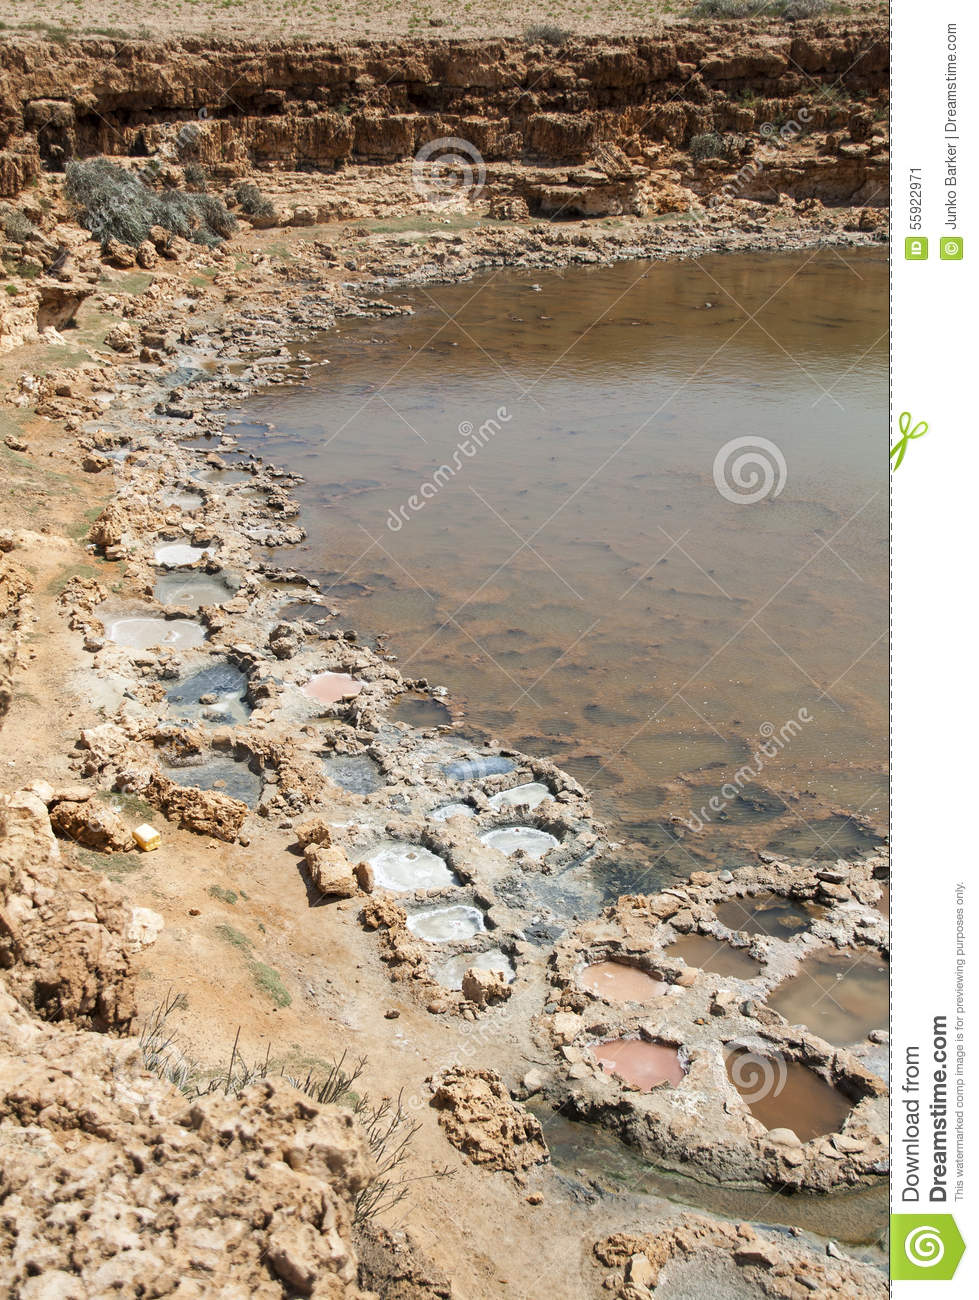 Salt evaporation ponds stock photo image 55922971 for Design of evaporation pond